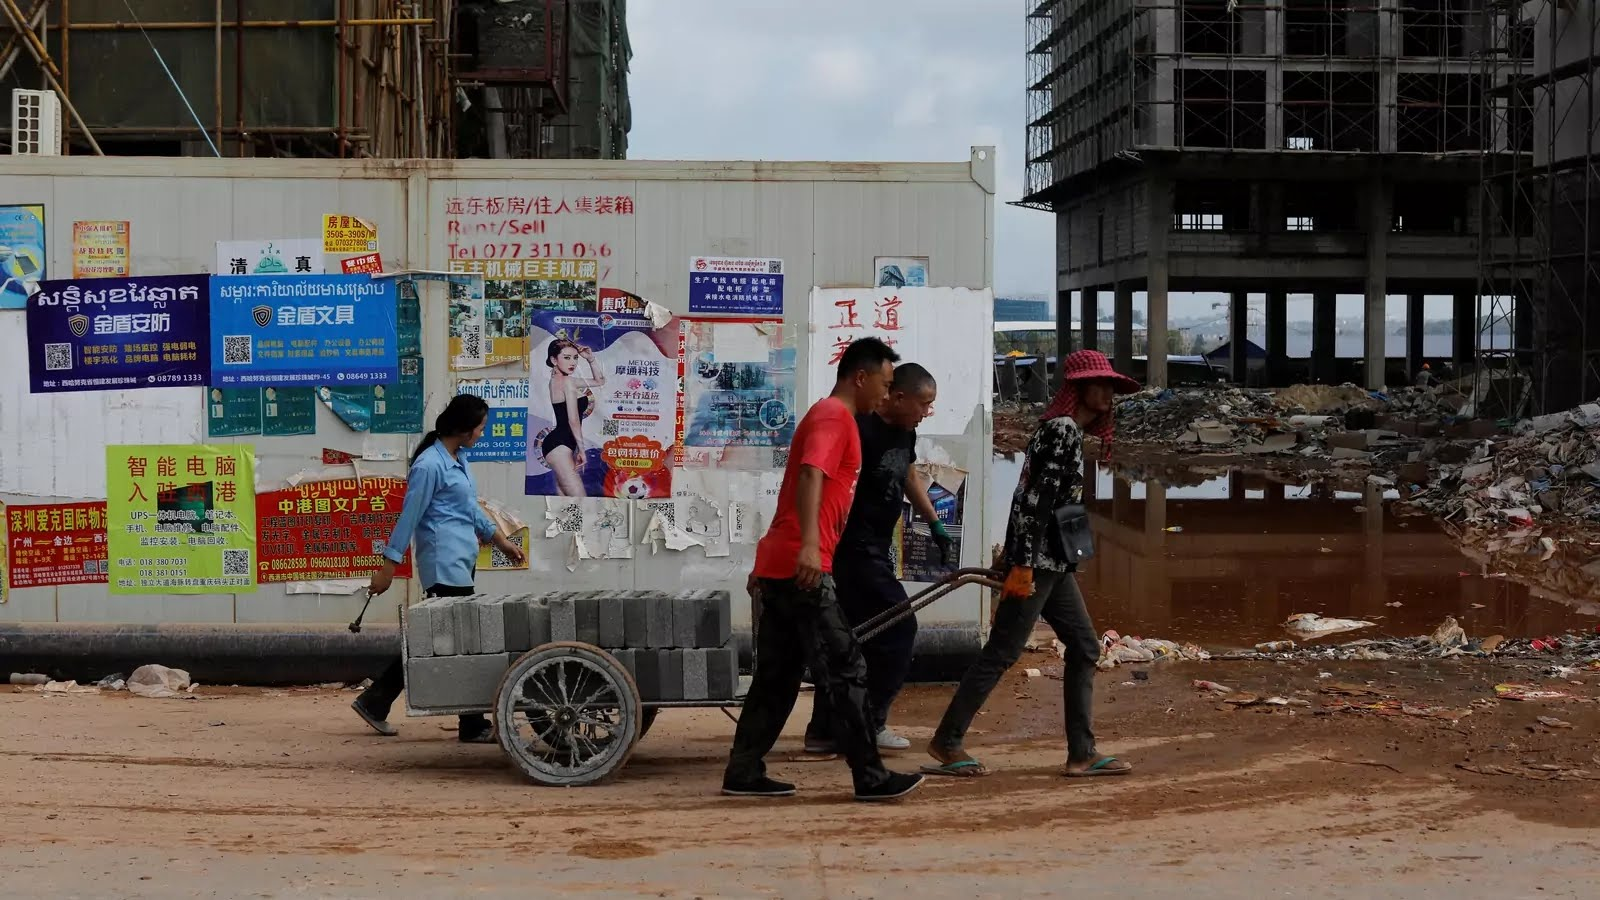 Construction workers move cement blocks in Chinatown, Sihanoukville, Cambodia, on May 18, 2019.